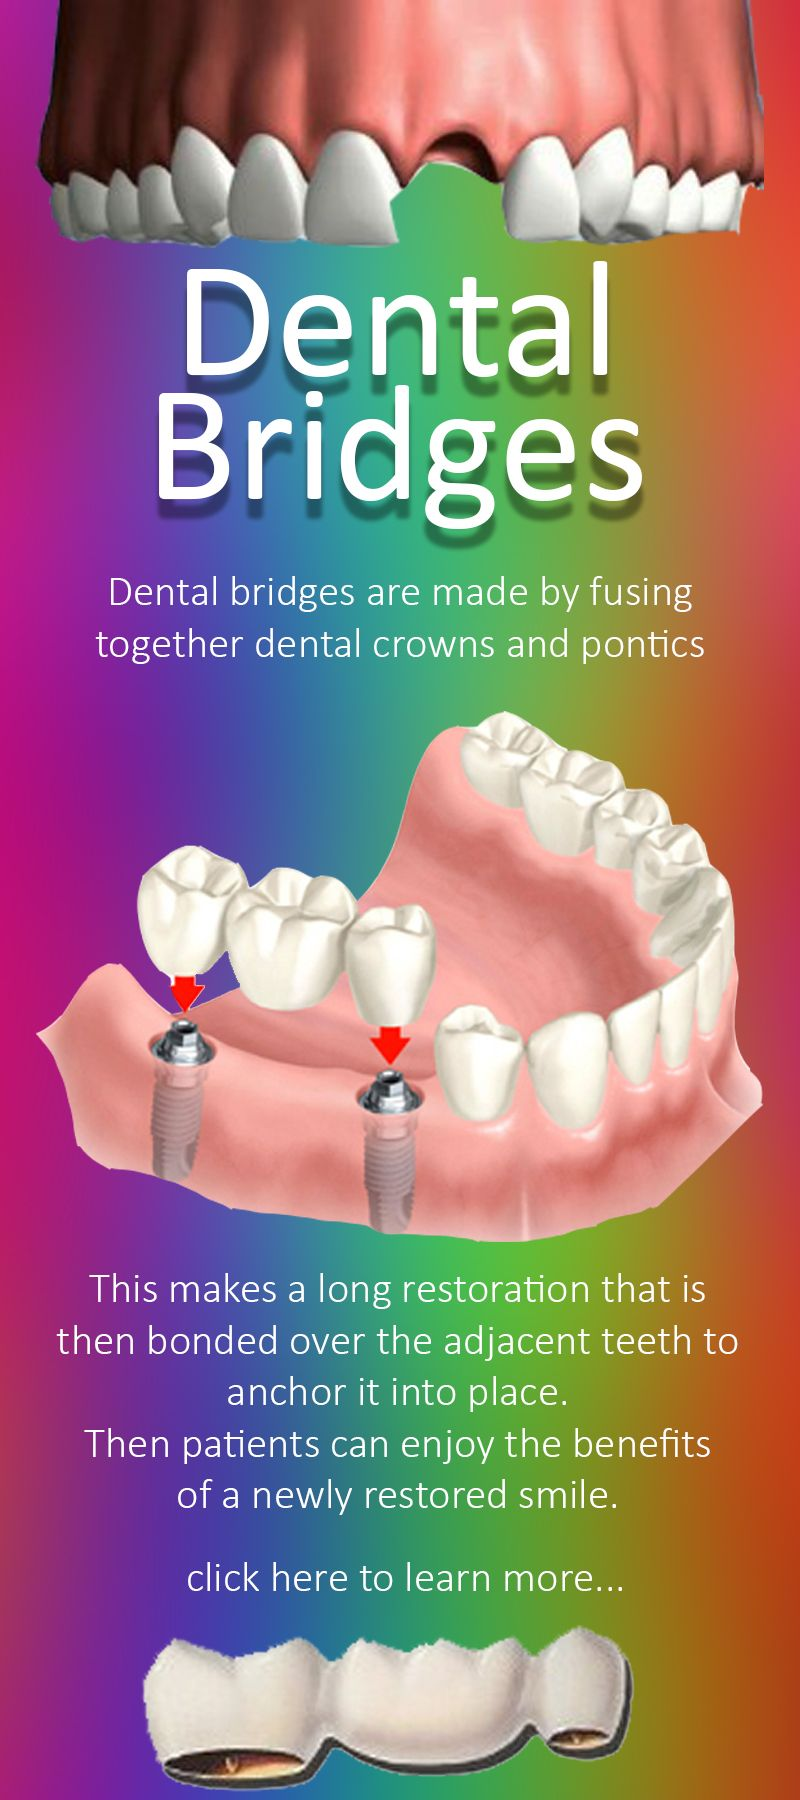 Dental Bridges near Mesquite TX - If you want to learn more about ...